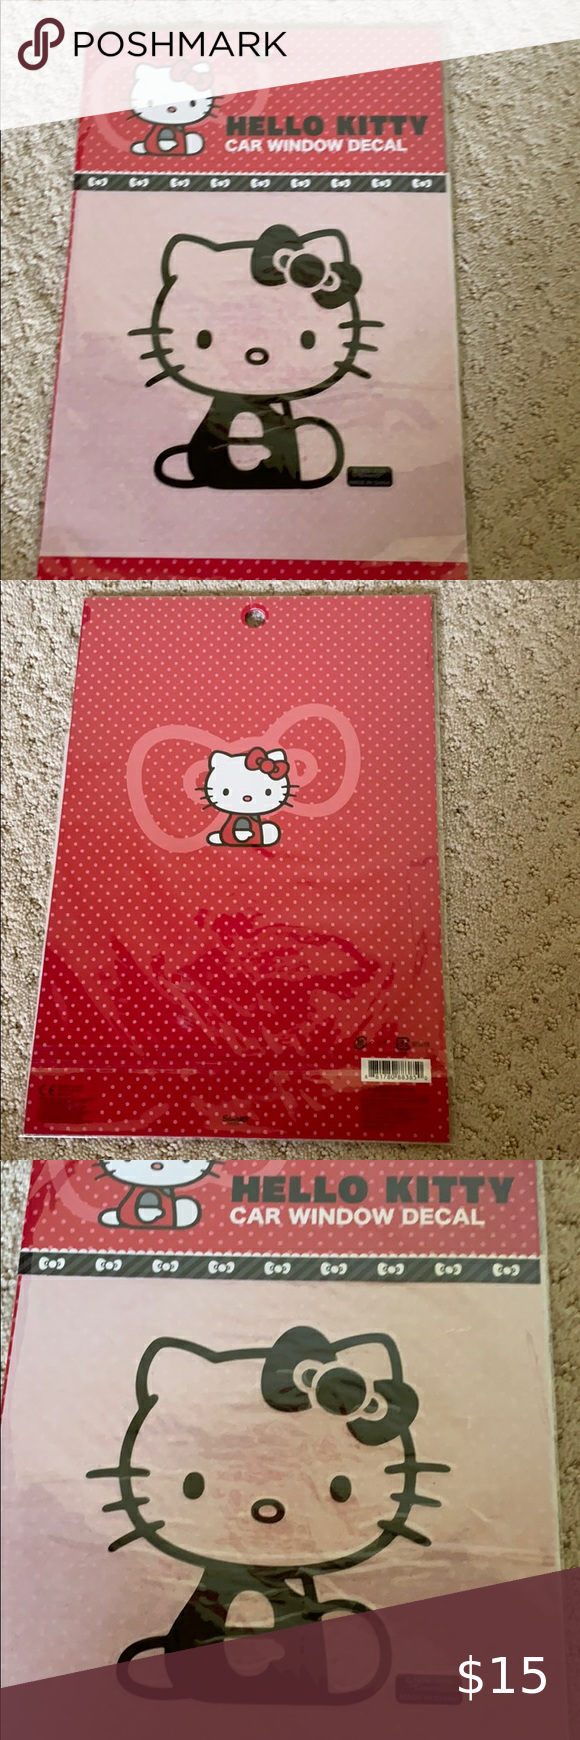 New Hello Kitty Car Decal Stickers Hello Kitty Car Car Decals Hello Kitty [ 1740 x 580 Pixel ]